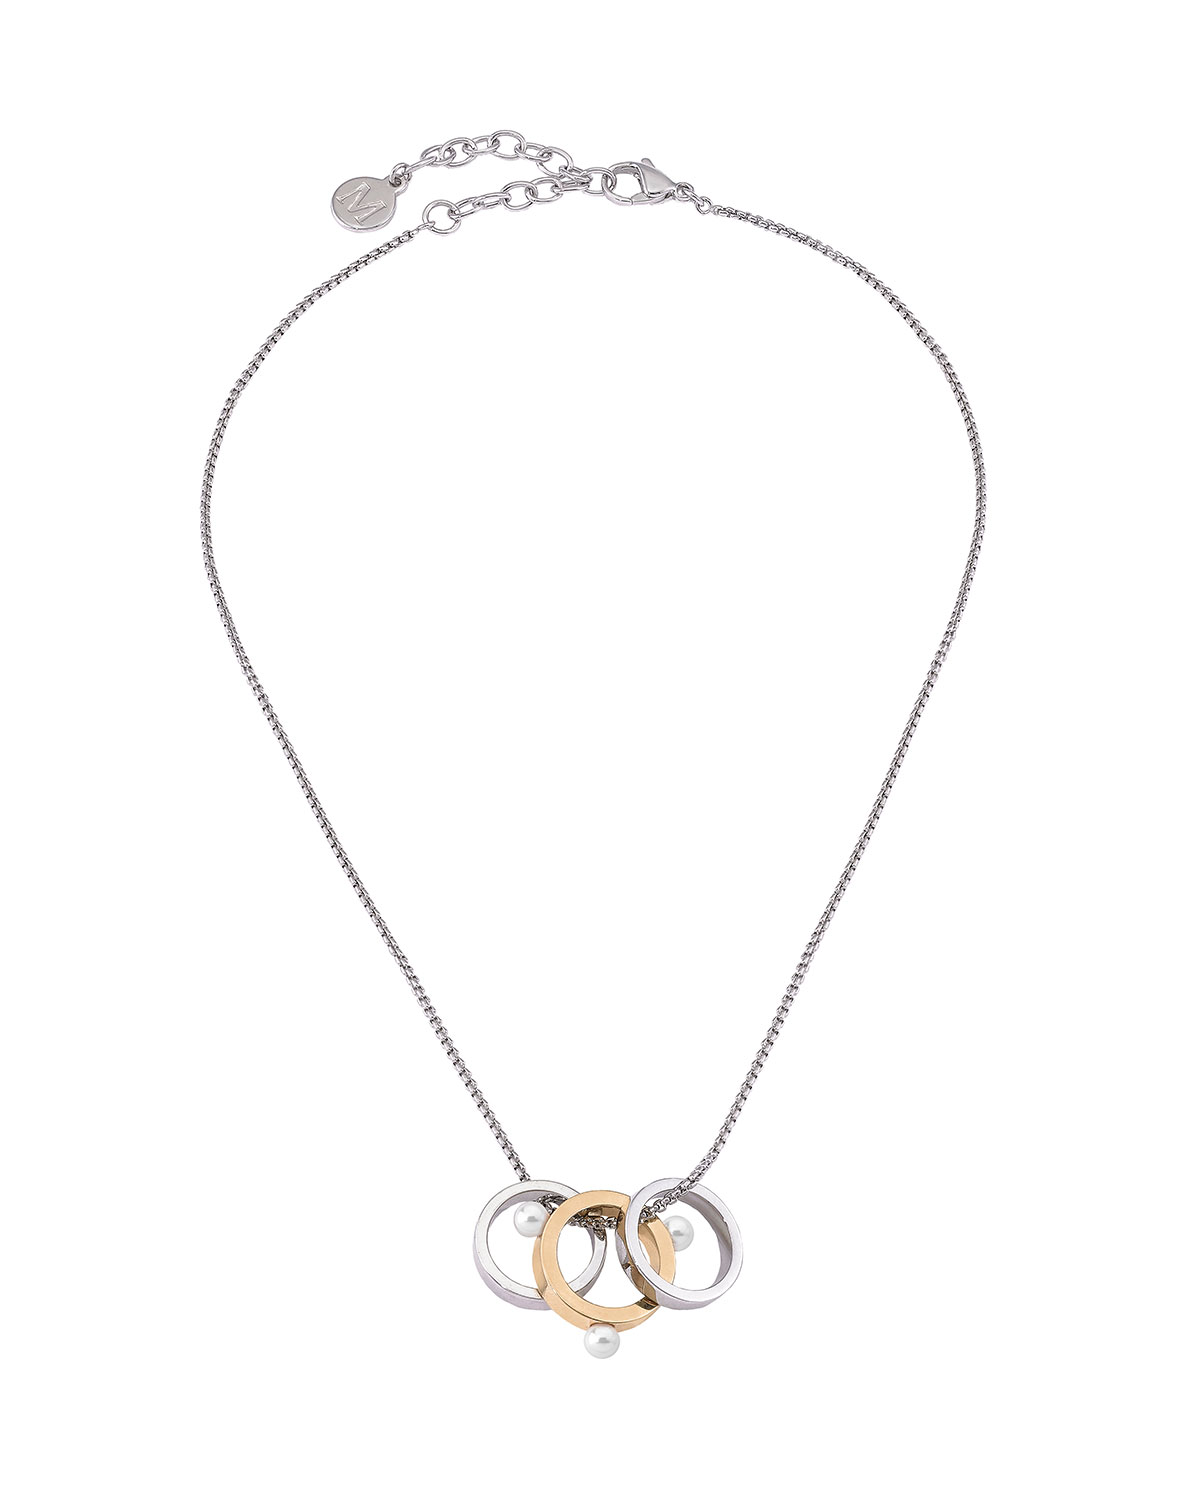 3-Ring Pearly Pendant Necklace